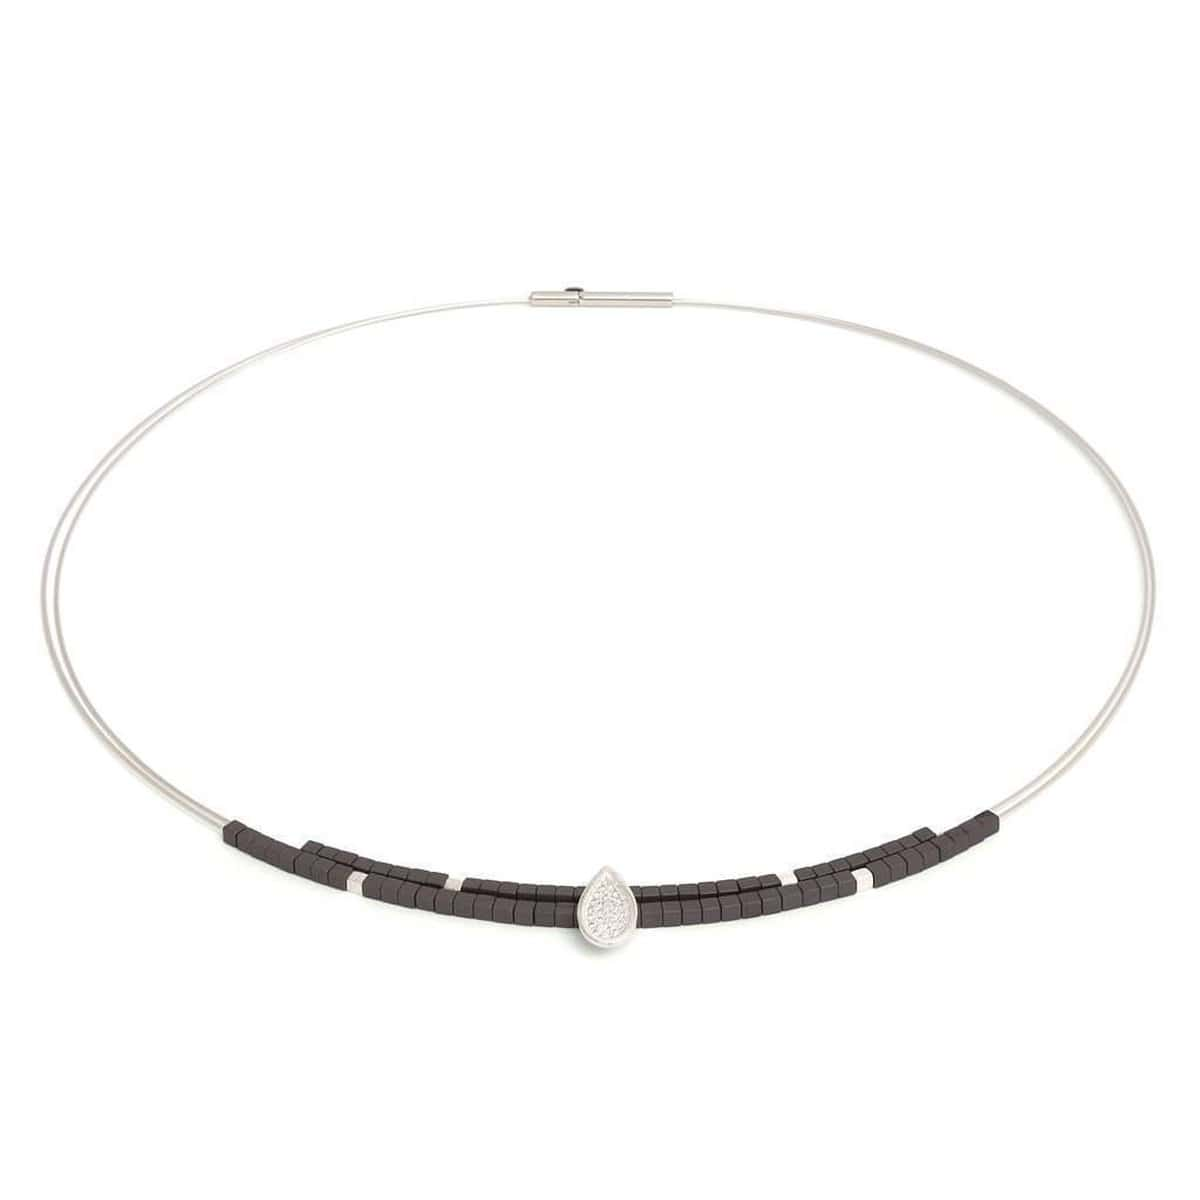 Tau Hematite Necklace - 84917274